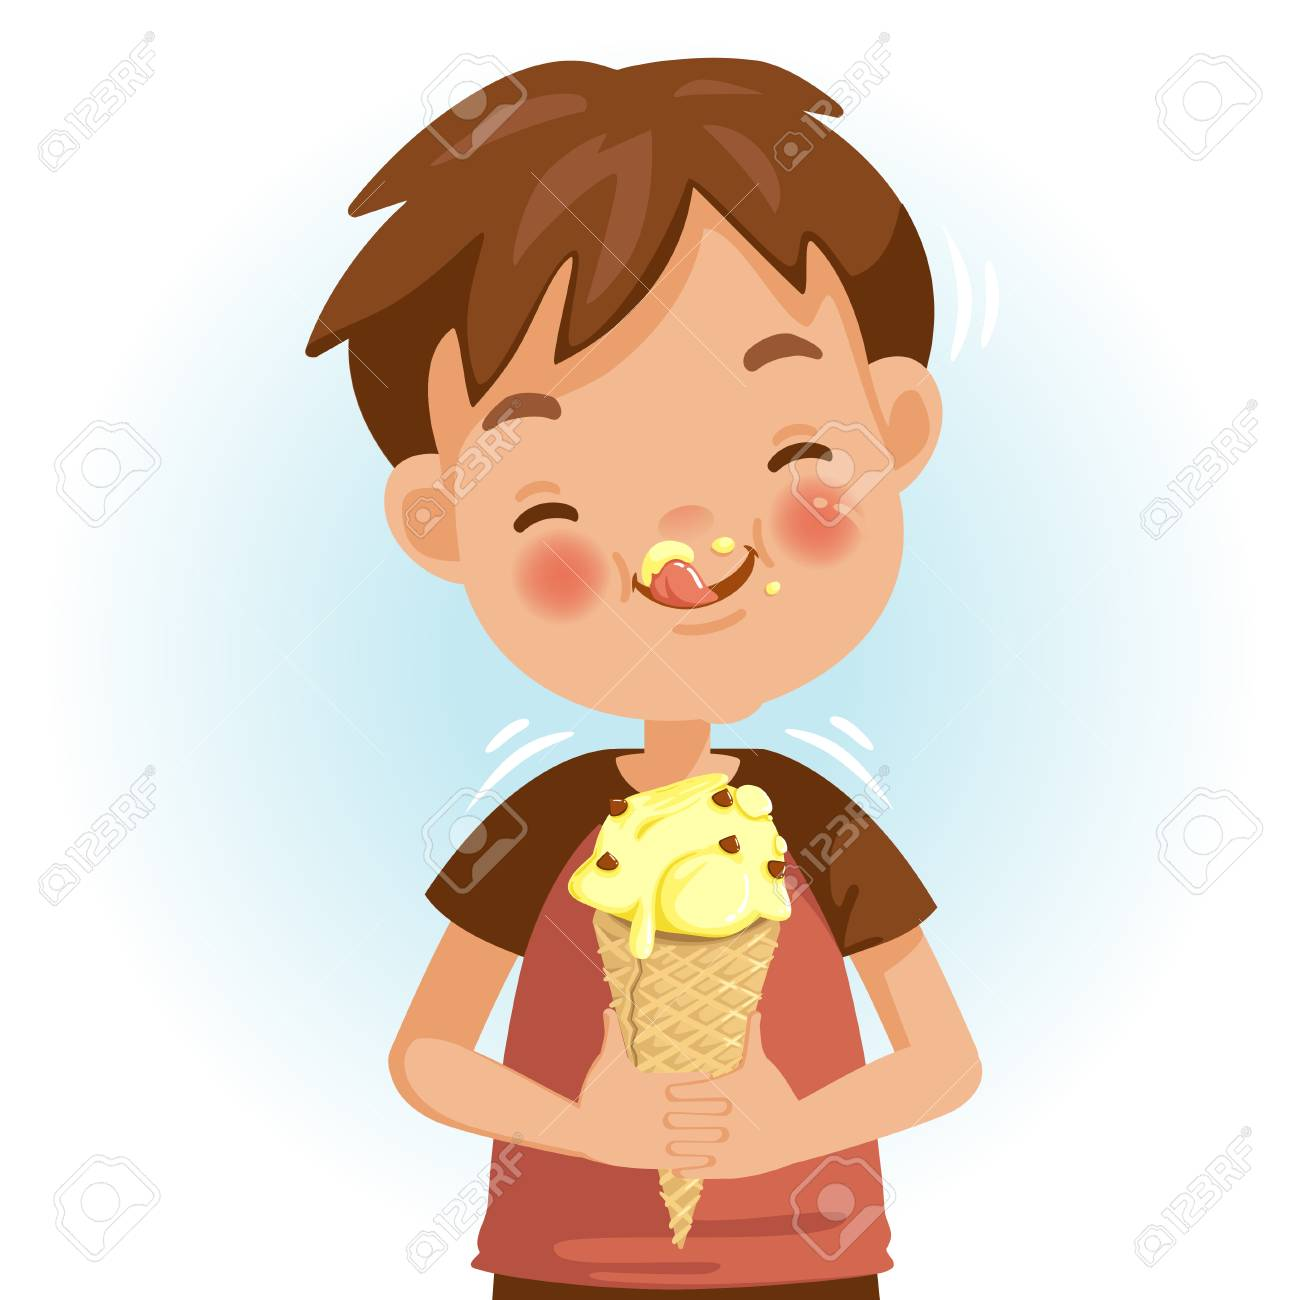 Boy eating ice cream. Emotional mood on the child's face feels good. Delicious and very happy. Licking the ice cream on the cheeks. Cute Cartoon In red shirt - 105746771